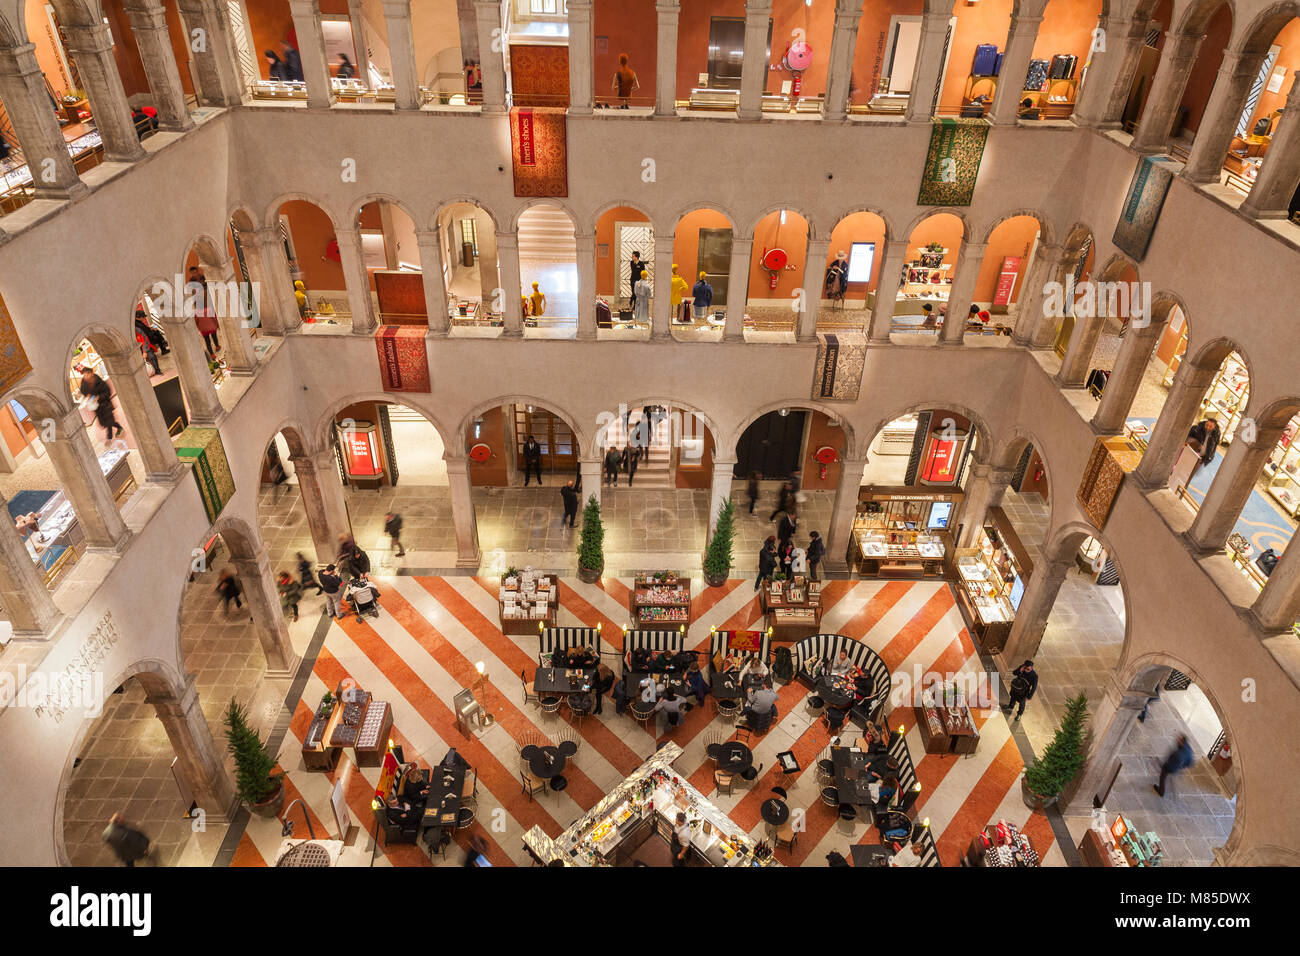 T Fondaco dei Tedeschi interior, San Marco, Venice, Veneto, Italy.  This luxury store is situated in a historic - Stock Image